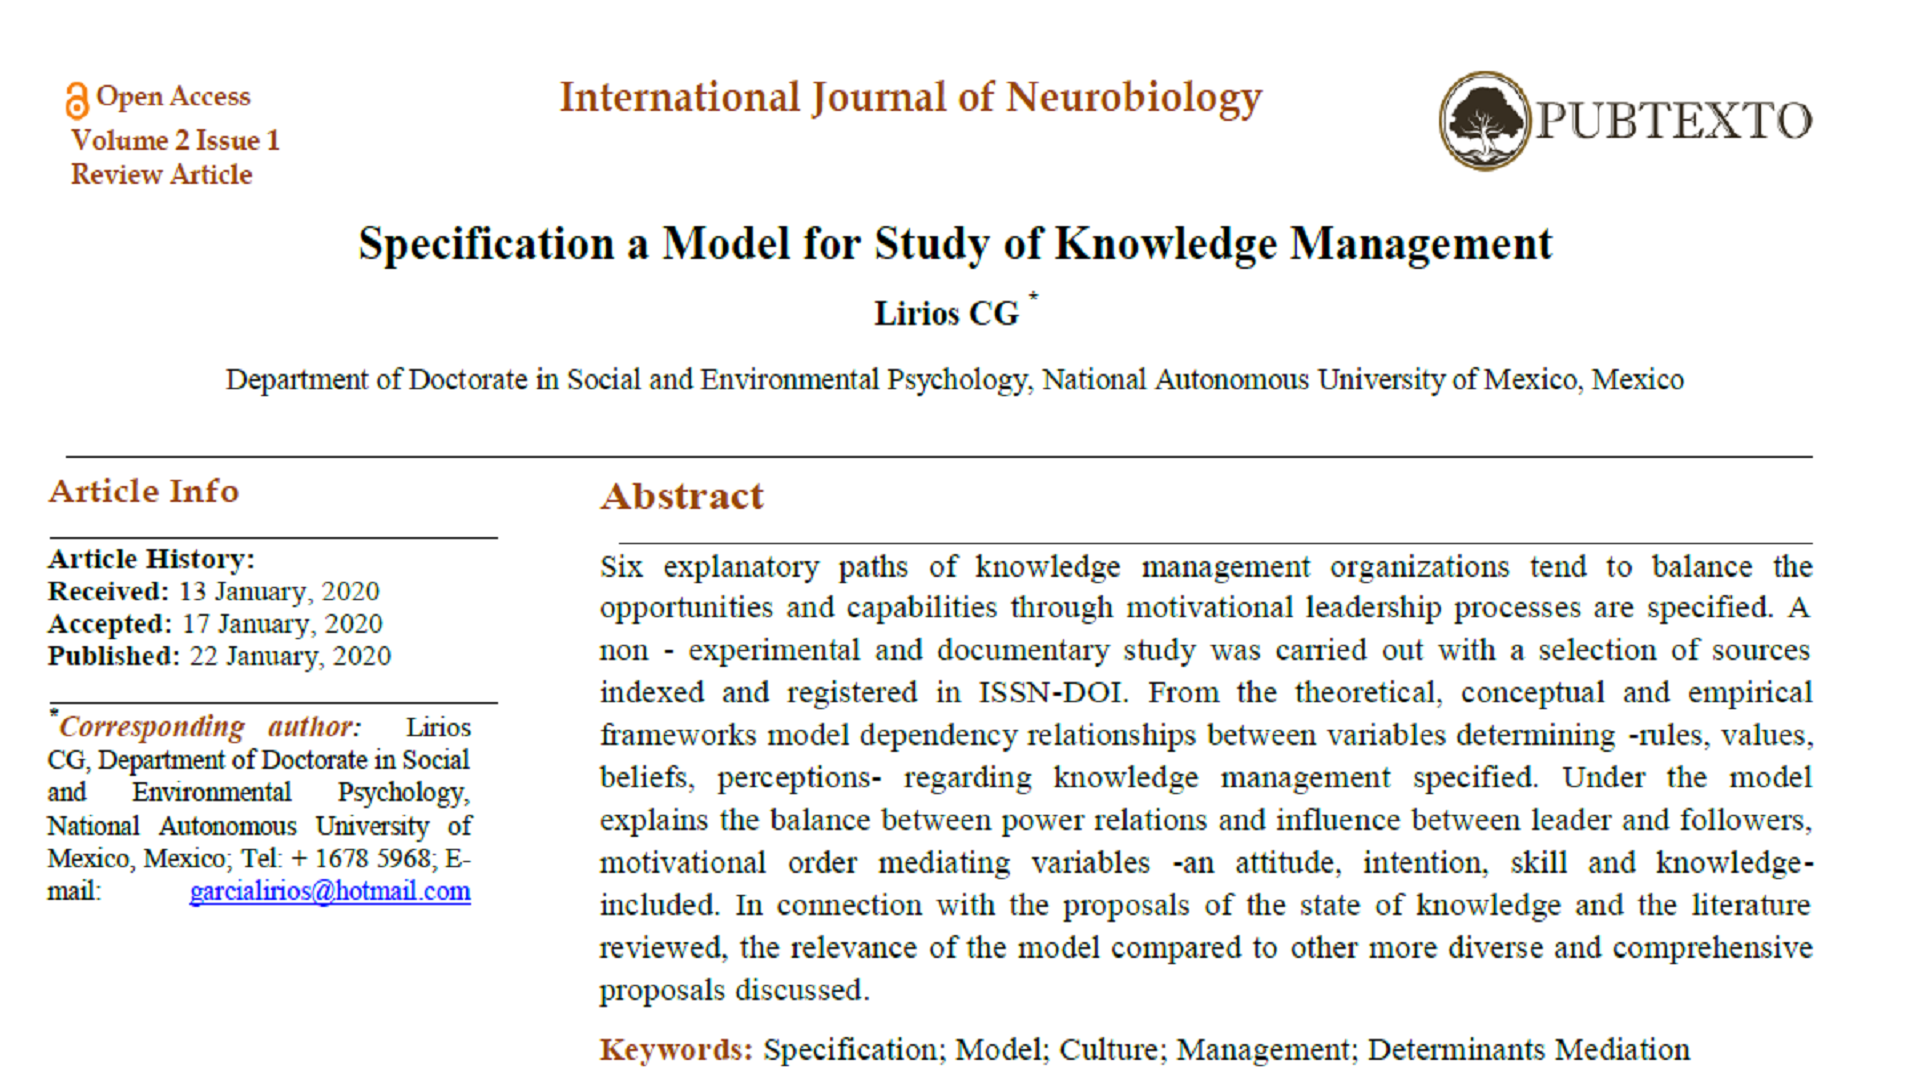 Specification a Model for Study of Knowledge Management